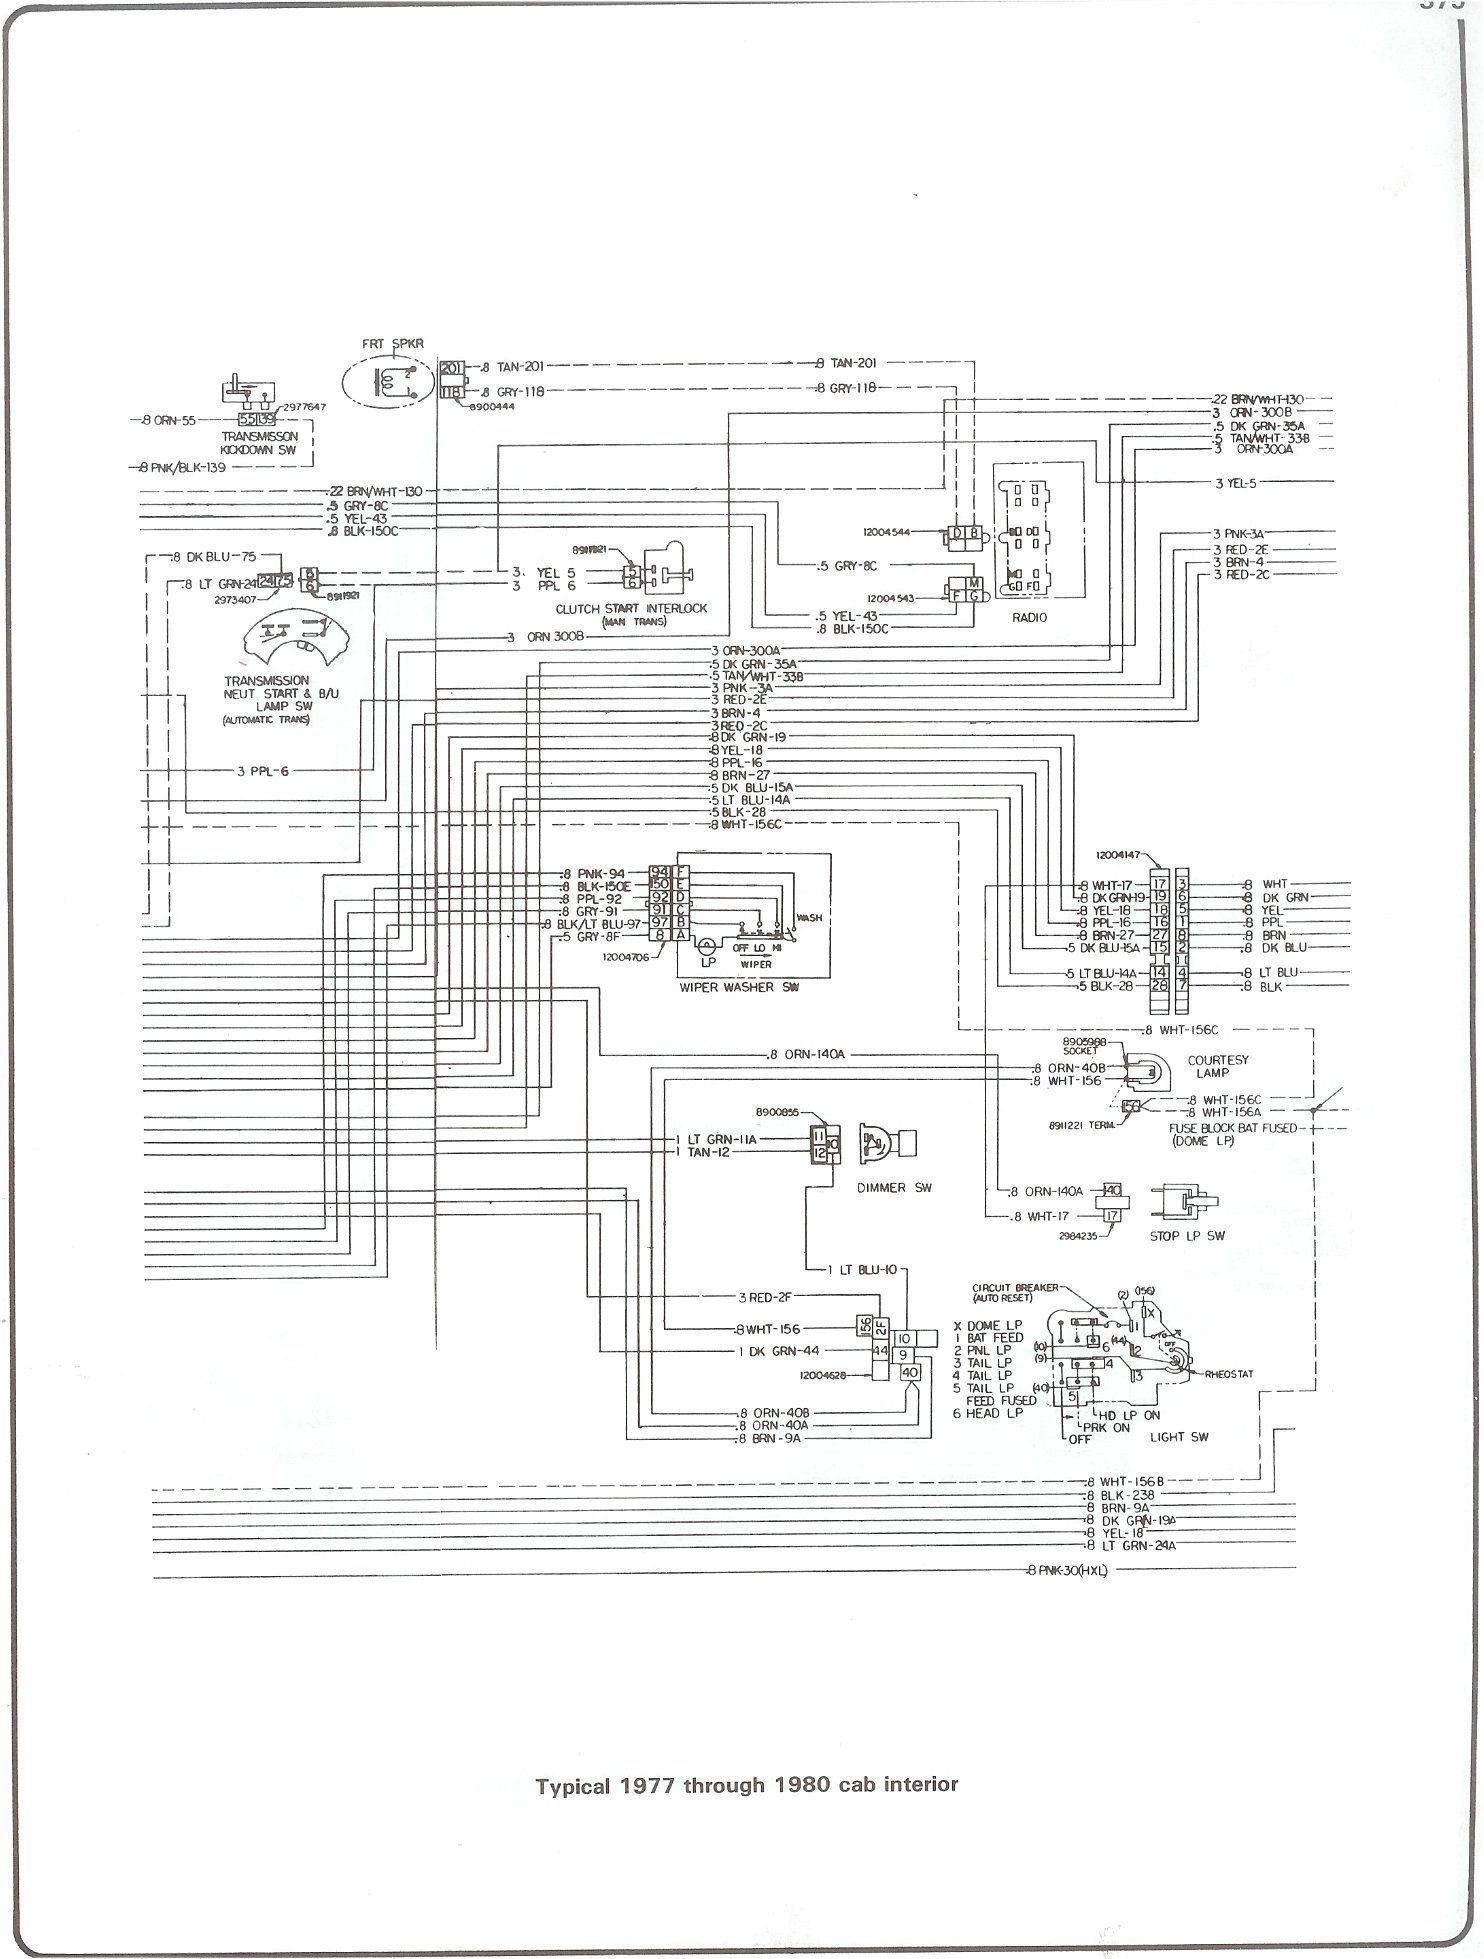 Complete 73 87 Wiring Diagrams 3 Liter Dodge Engine Diagram 77 80 Cab Interior